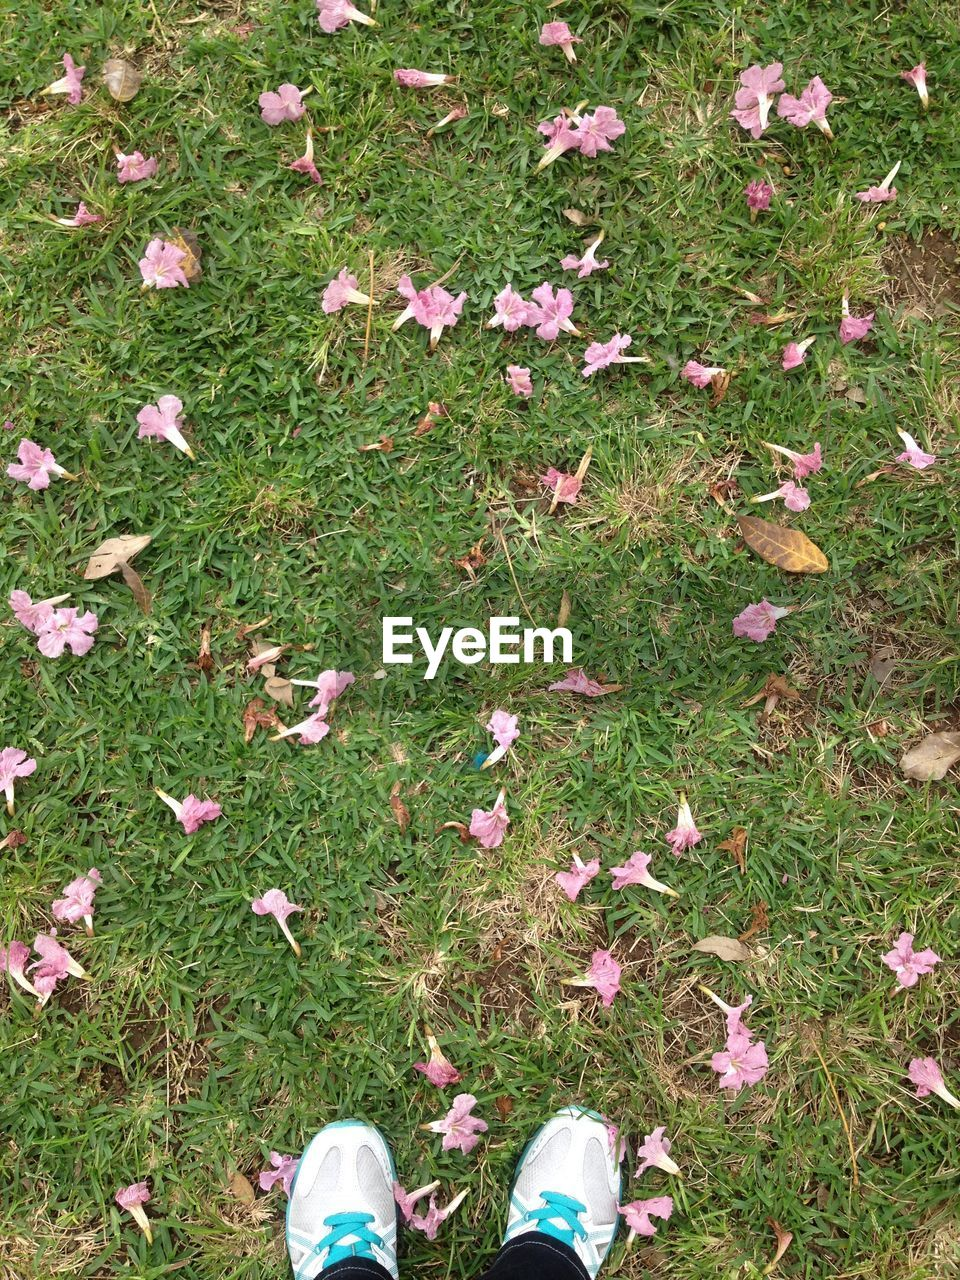 grass, field, low section, high angle view, nature, day, pink color, outdoors, human leg, one person, standing, real people, autumn, leaf, flower, growth, human body part, plant, beauty in nature, one woman only, people, adult